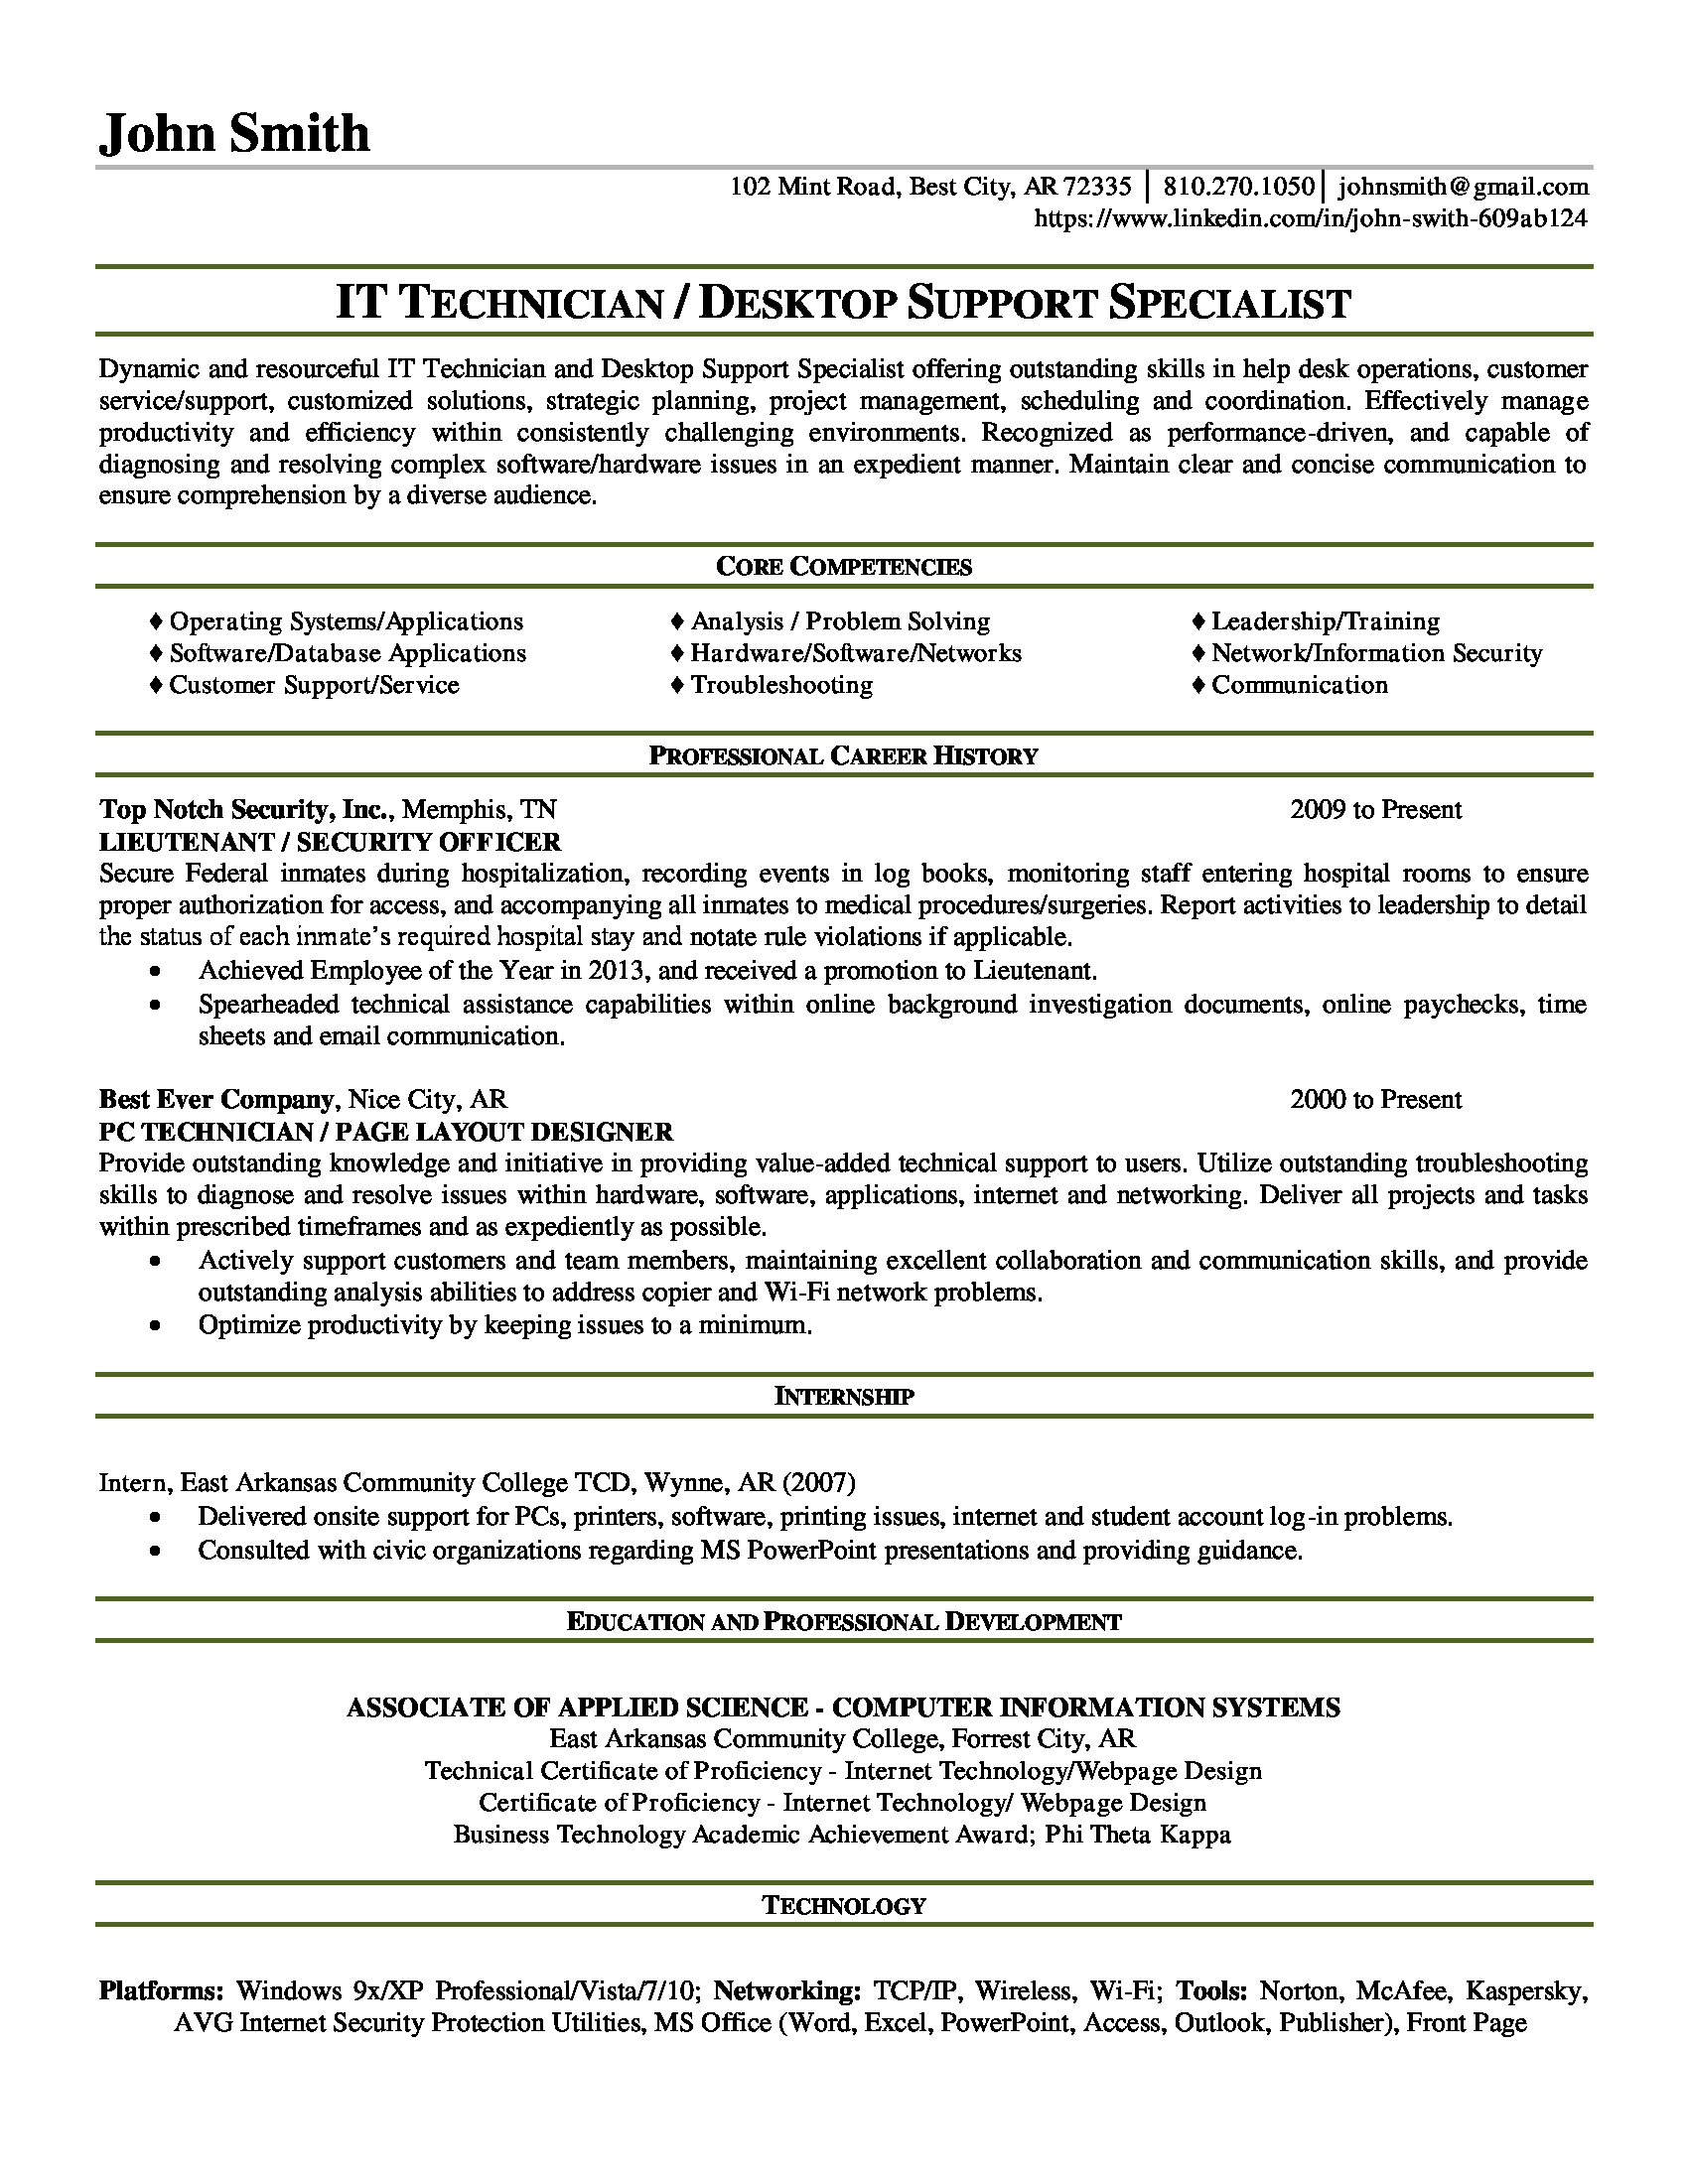 100 technical support specialist sle resume